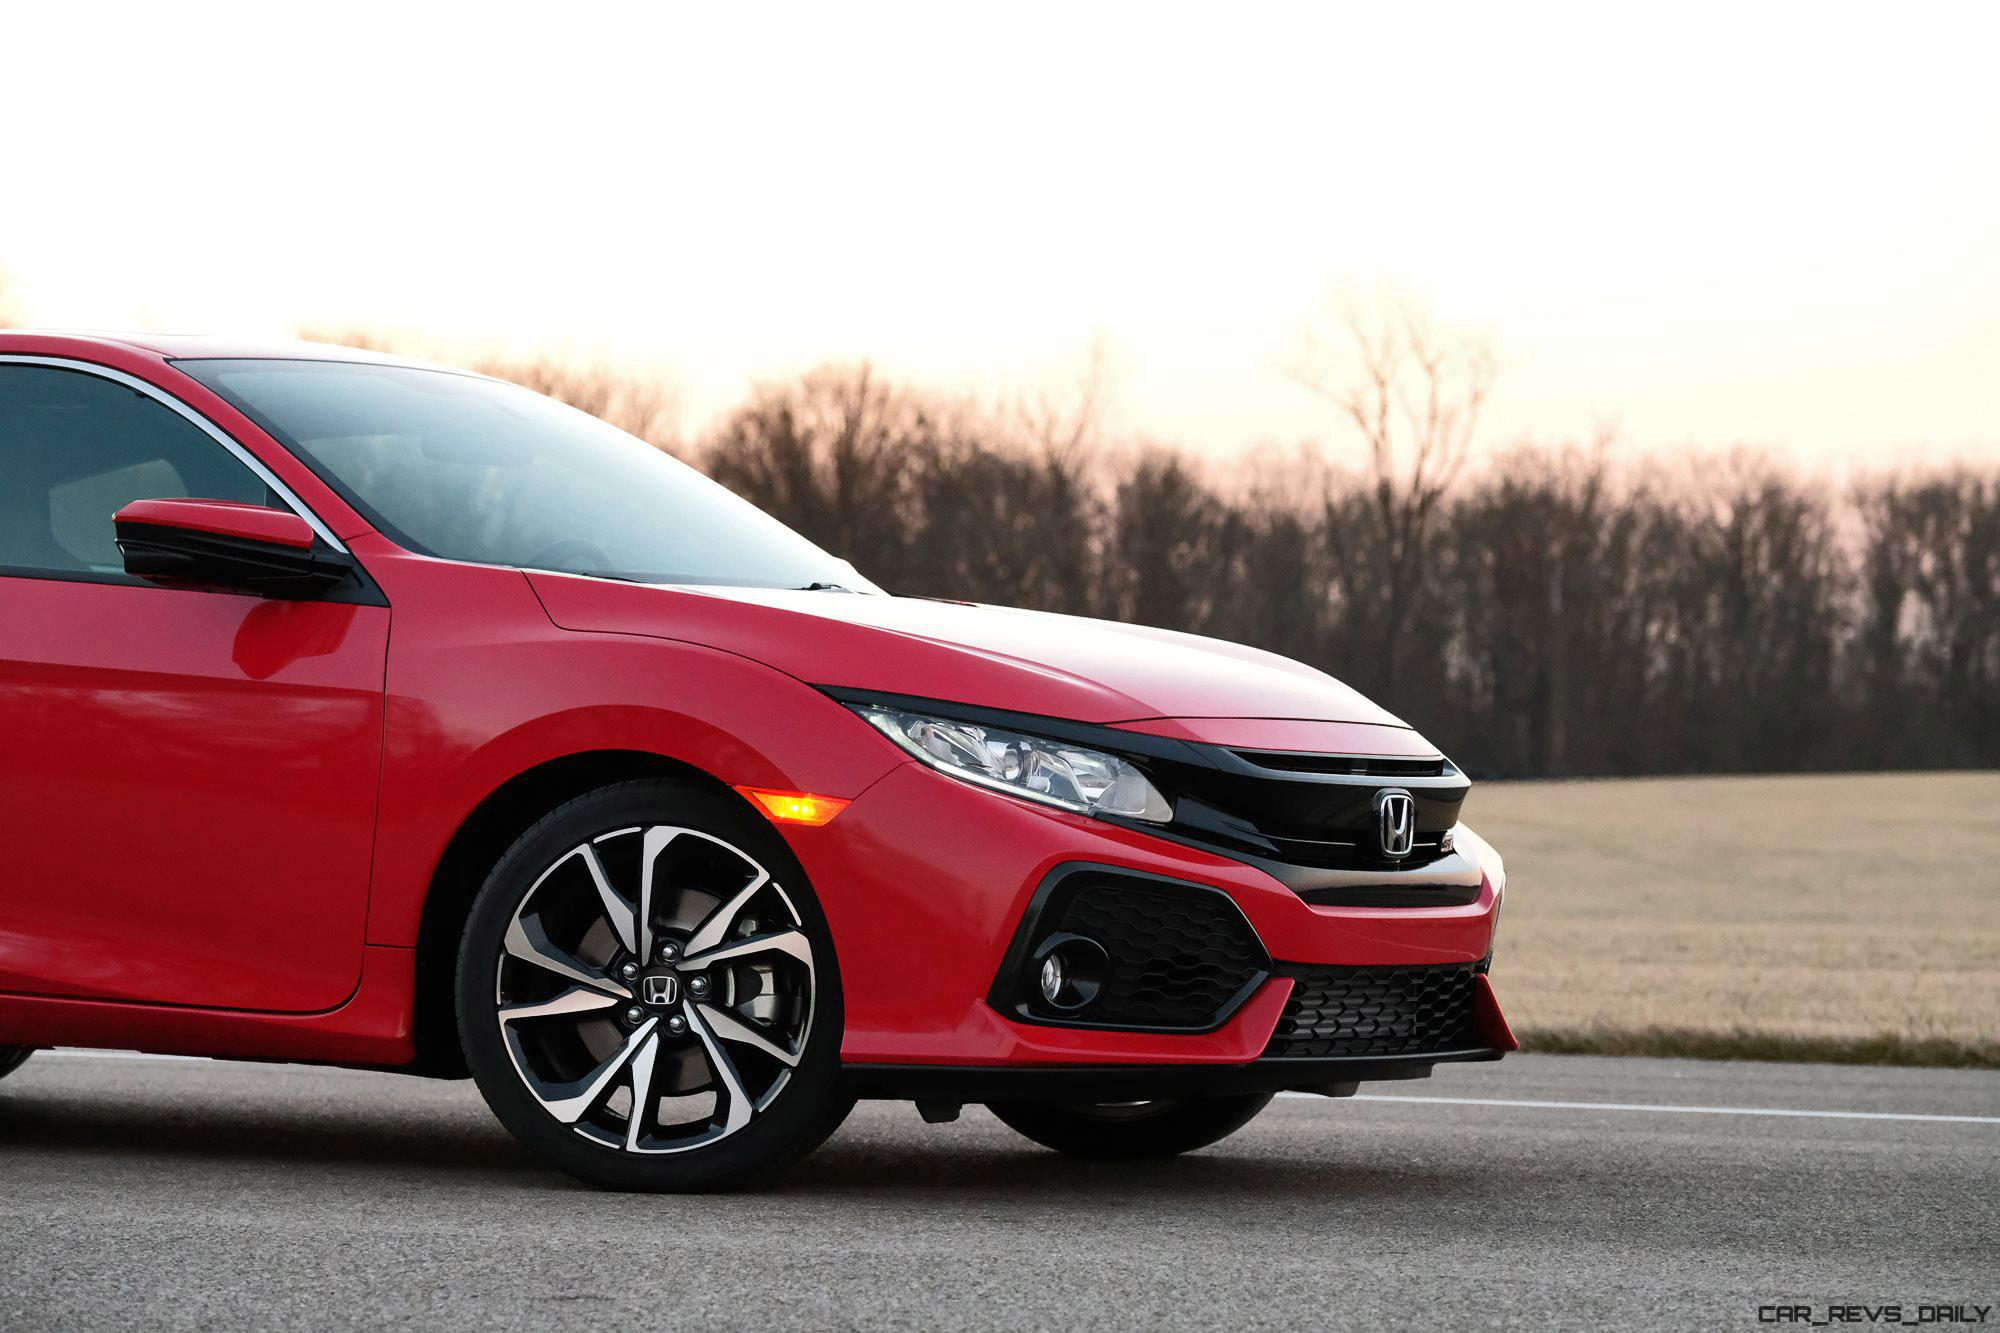 2017 honda civic si coupe and sedan rock 205hp turbos in for 2017 honda civic si turbo